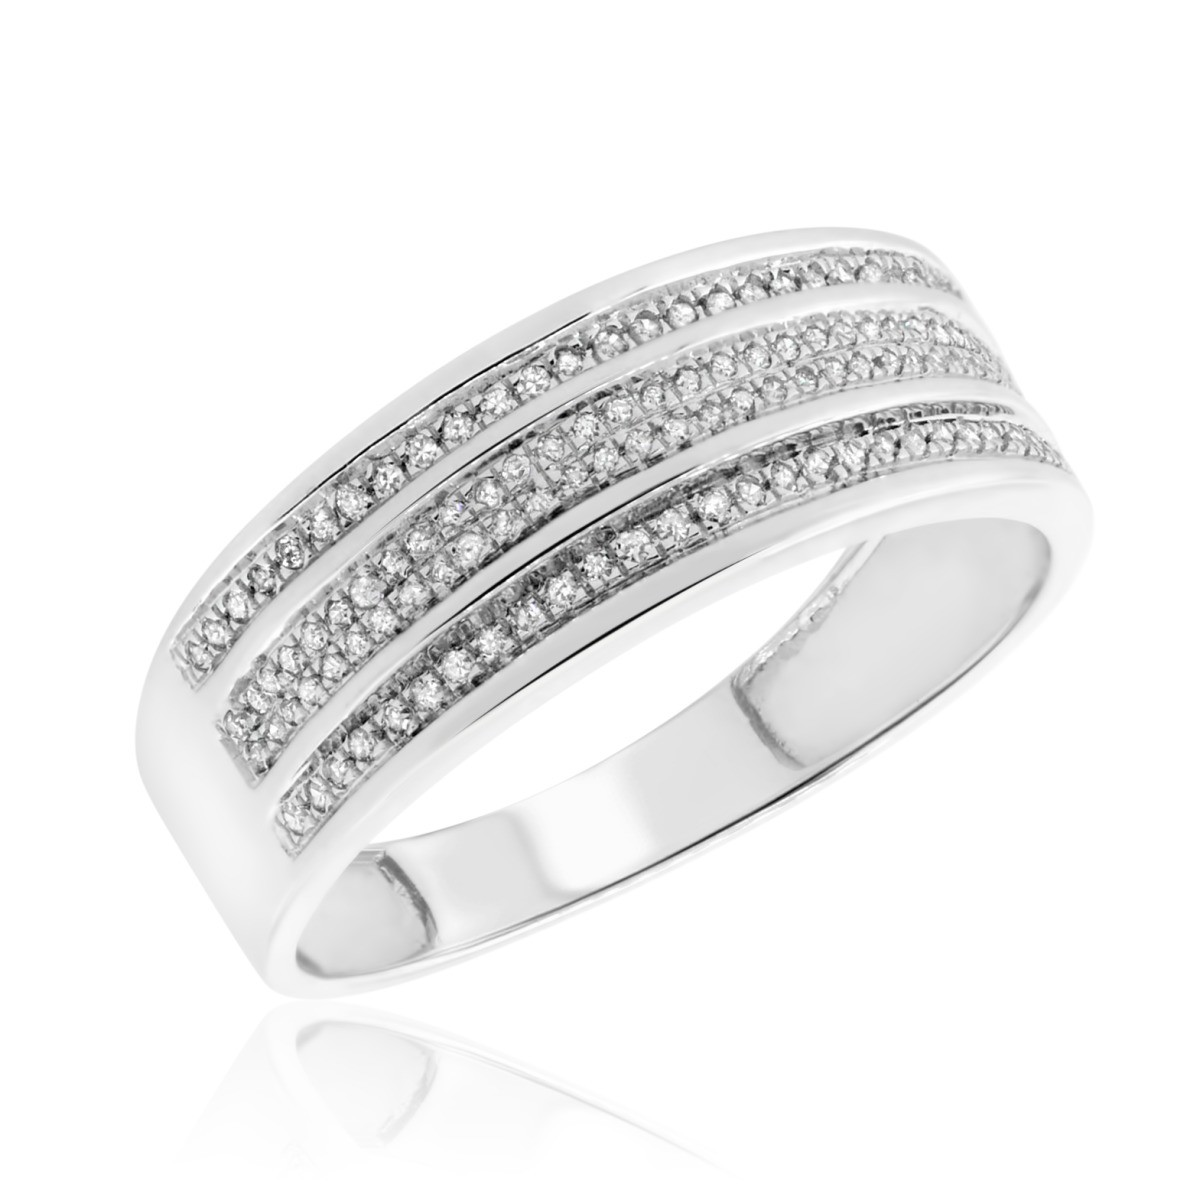 1/5 Carat T.W. Diamond Mens Wedding Band  10K White Gold